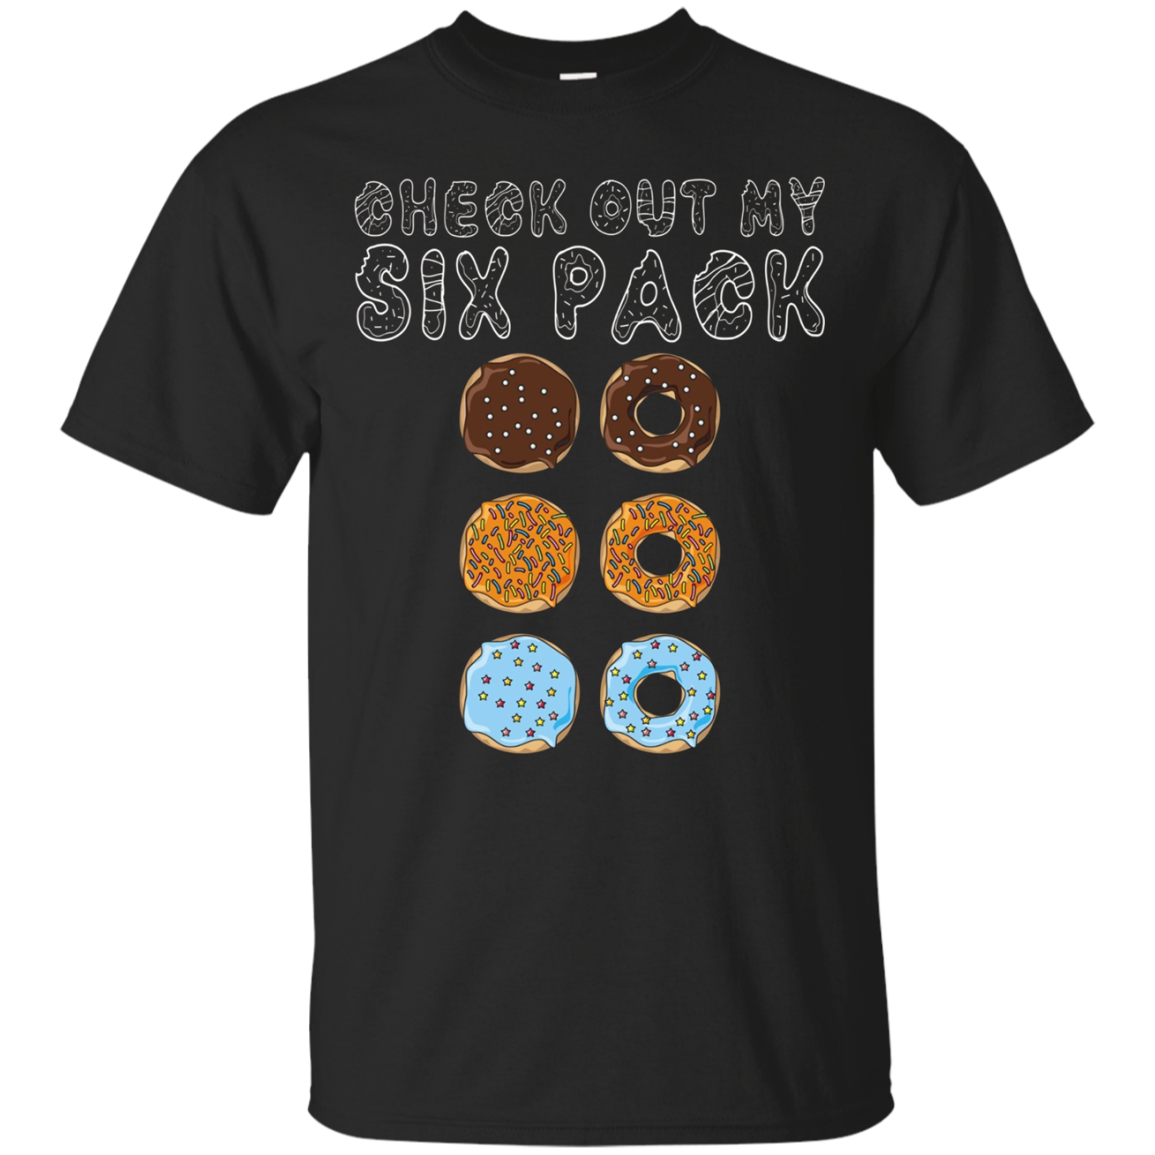 Check Out My Six Pack T Shirt - Funny Donut Shirt